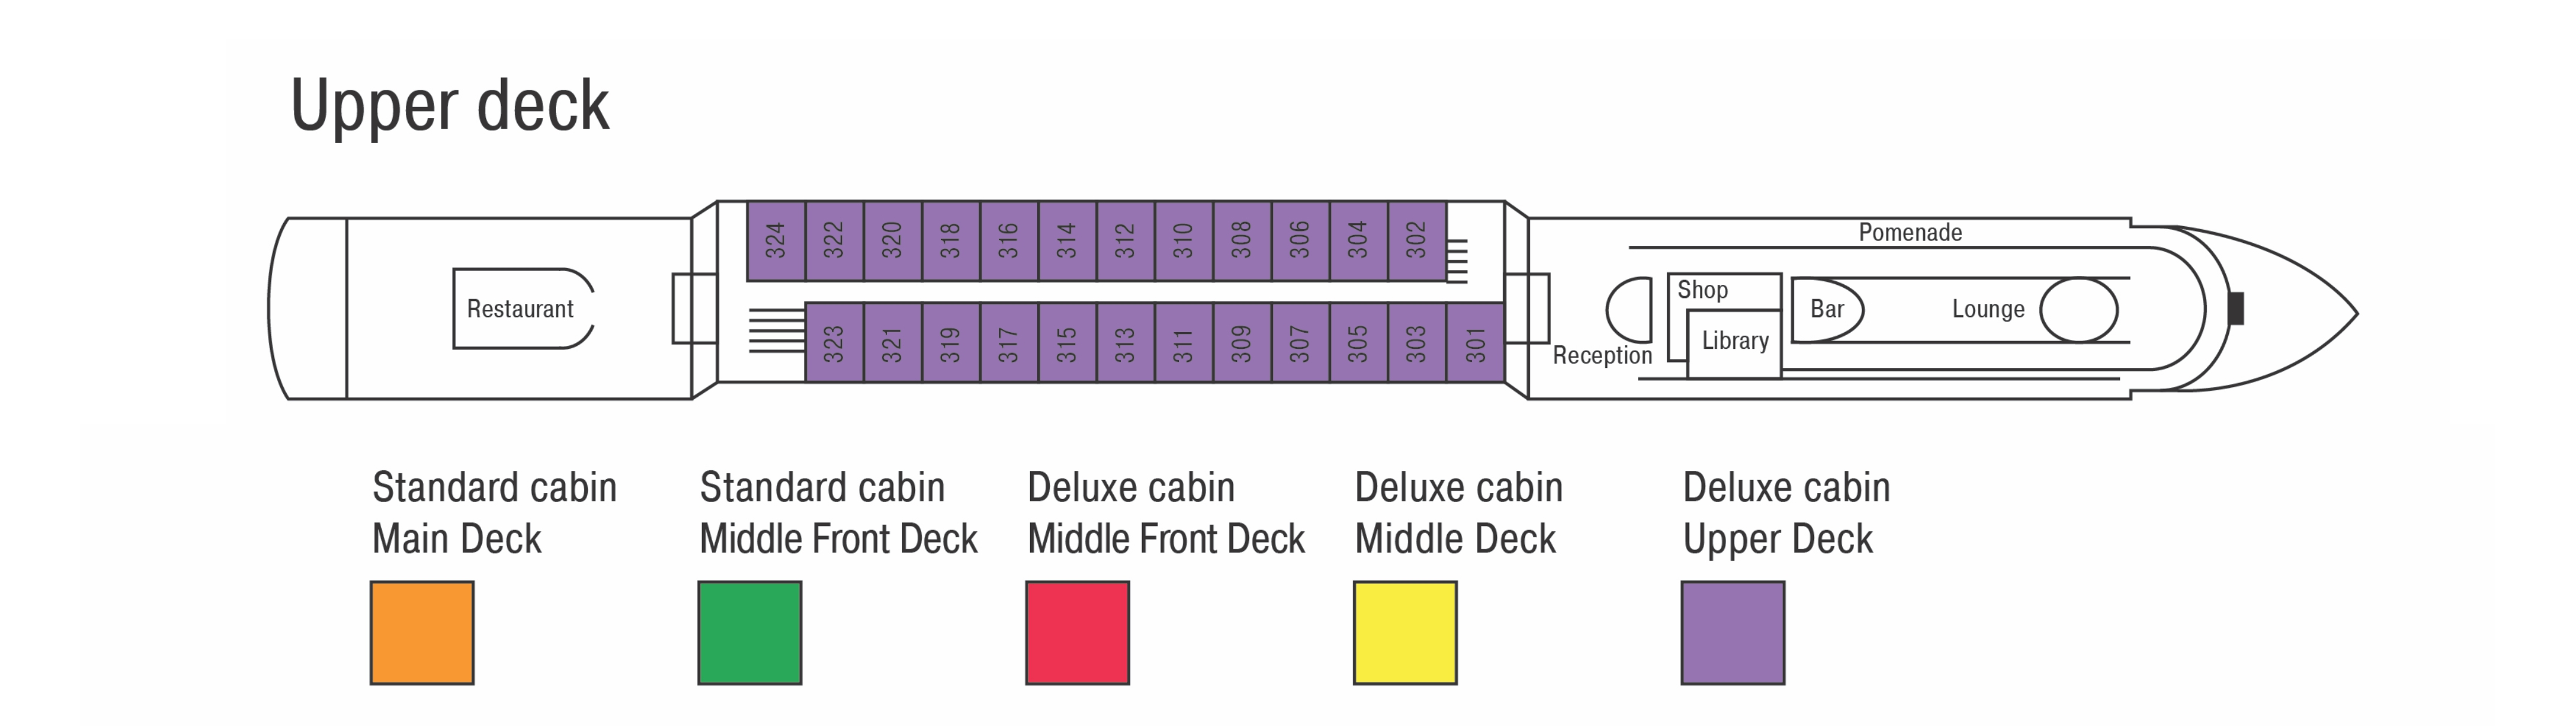 MS Crucebelle, Upper Deck